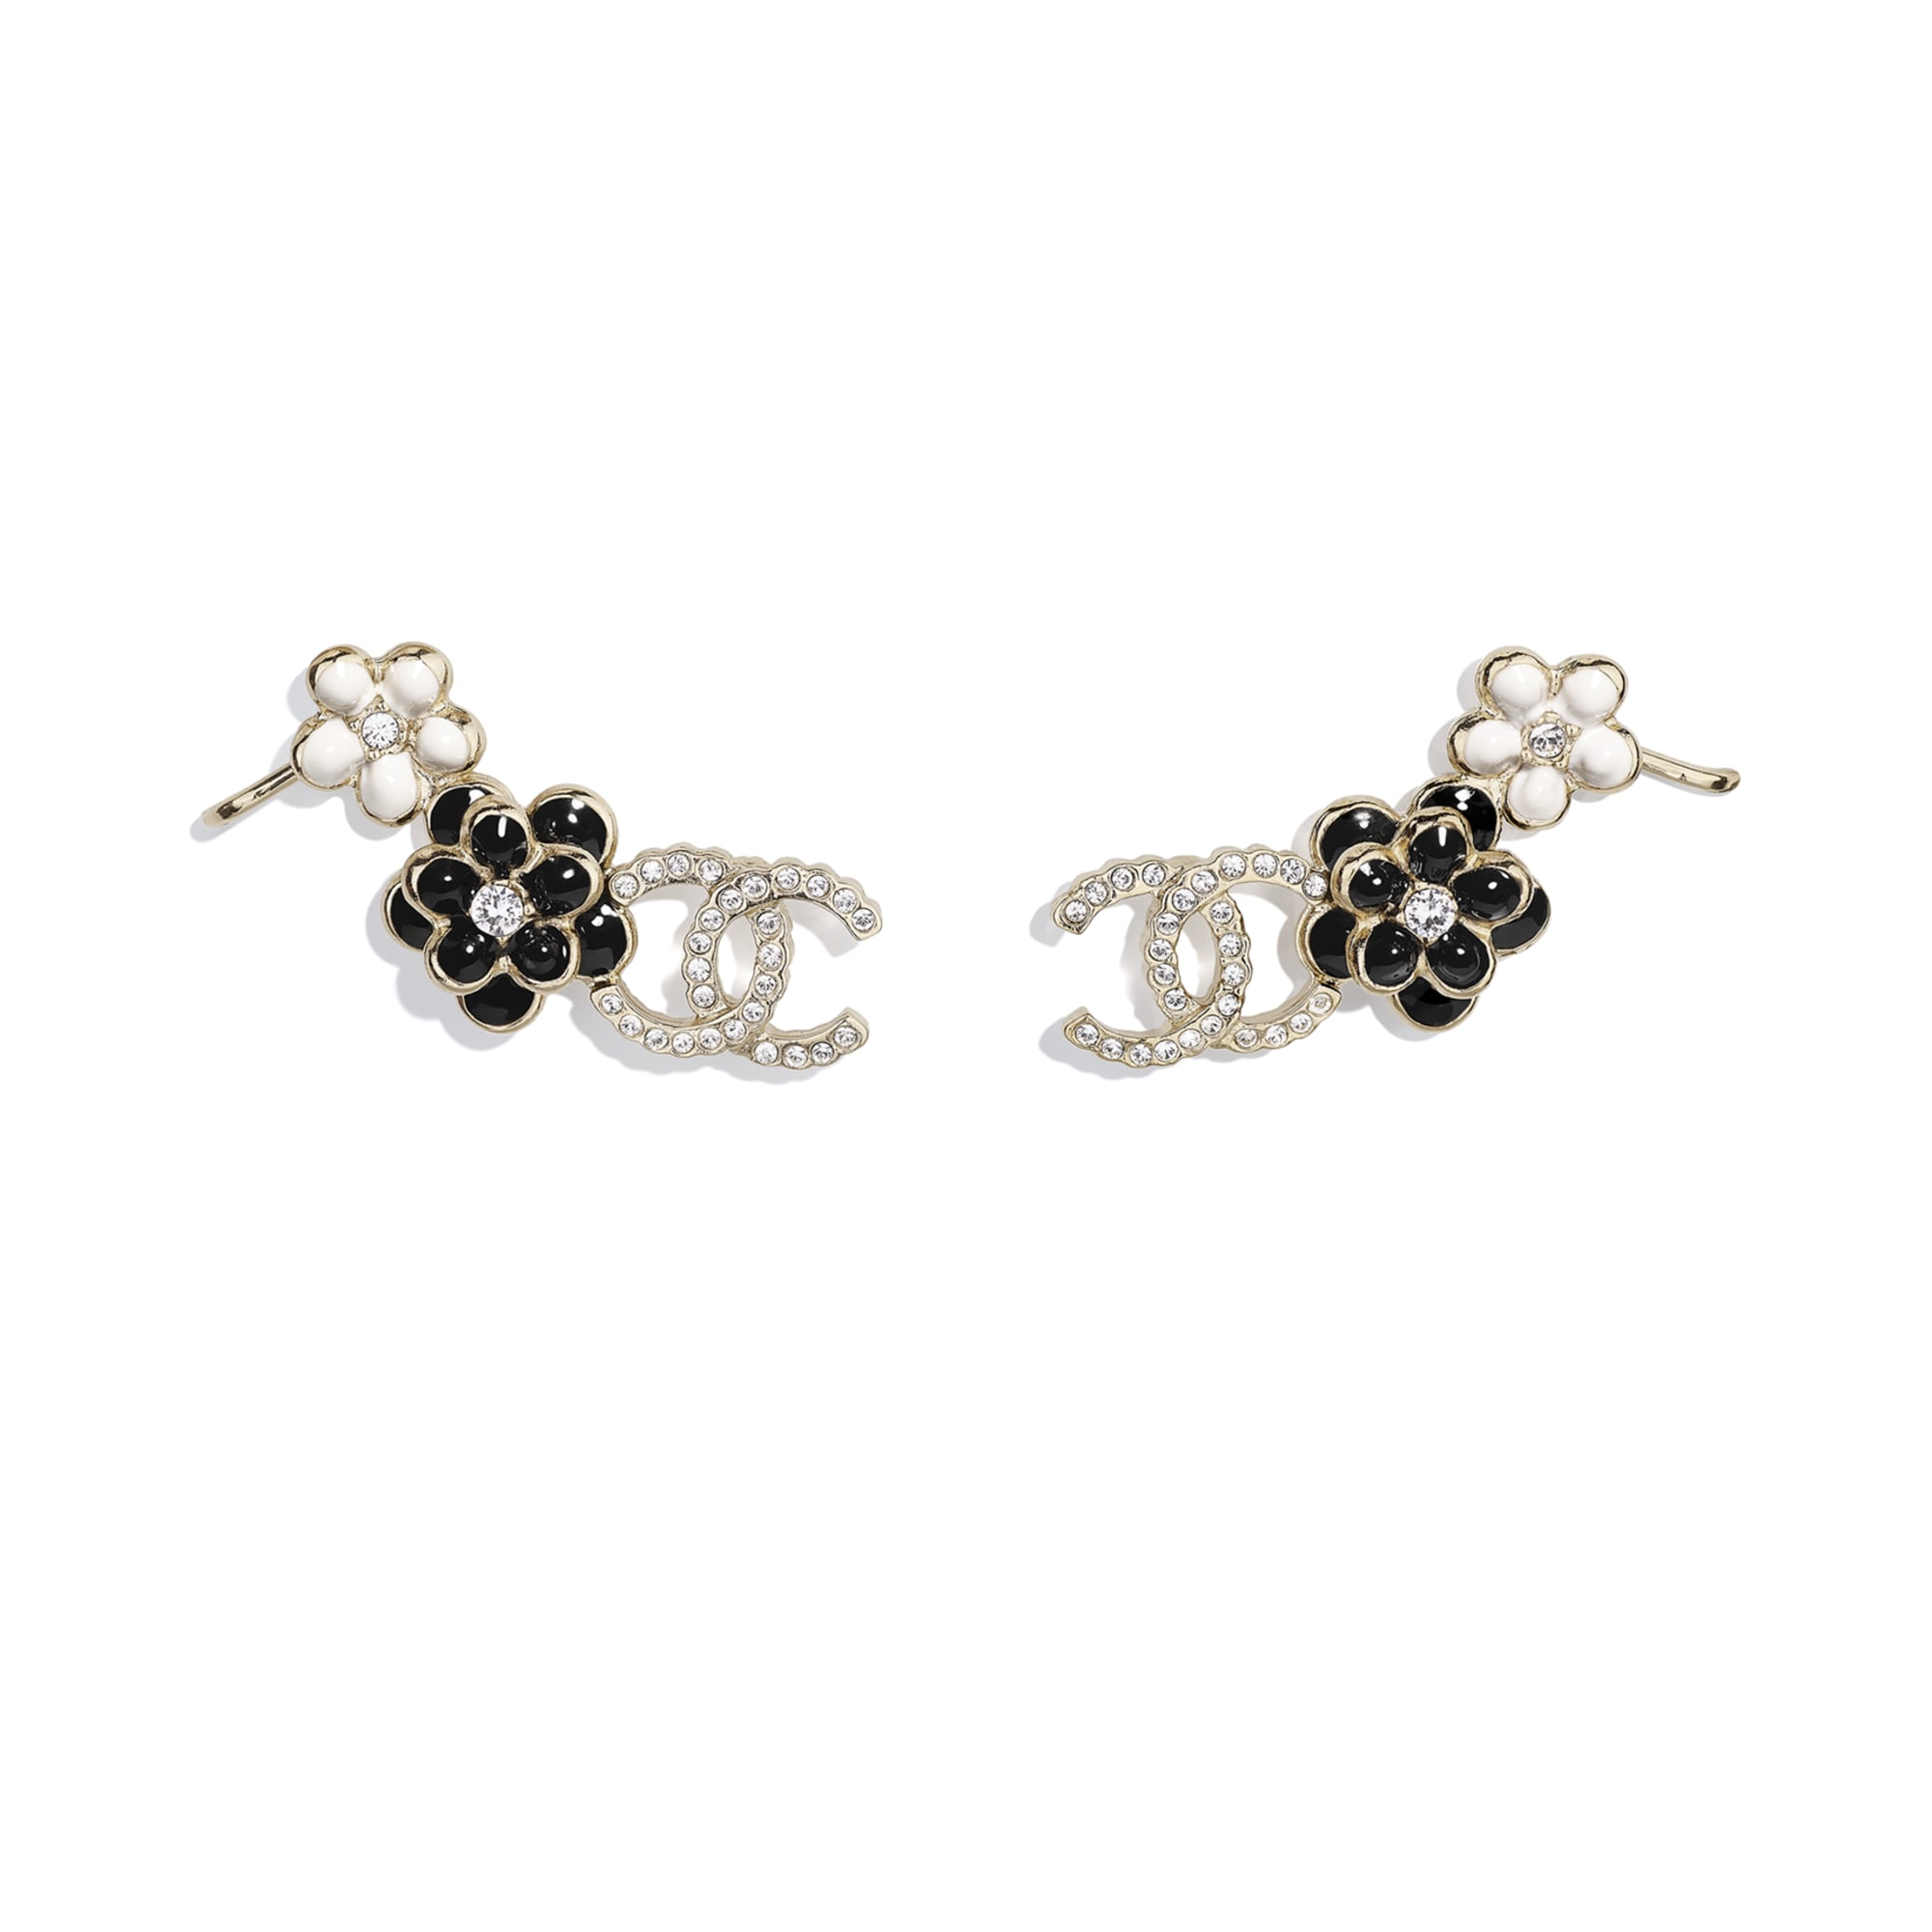 Clip-on Earrings - Gold, Crystal, Black & White - Metal, Strass & Resin - CHANEL - Default view - see standard sized version